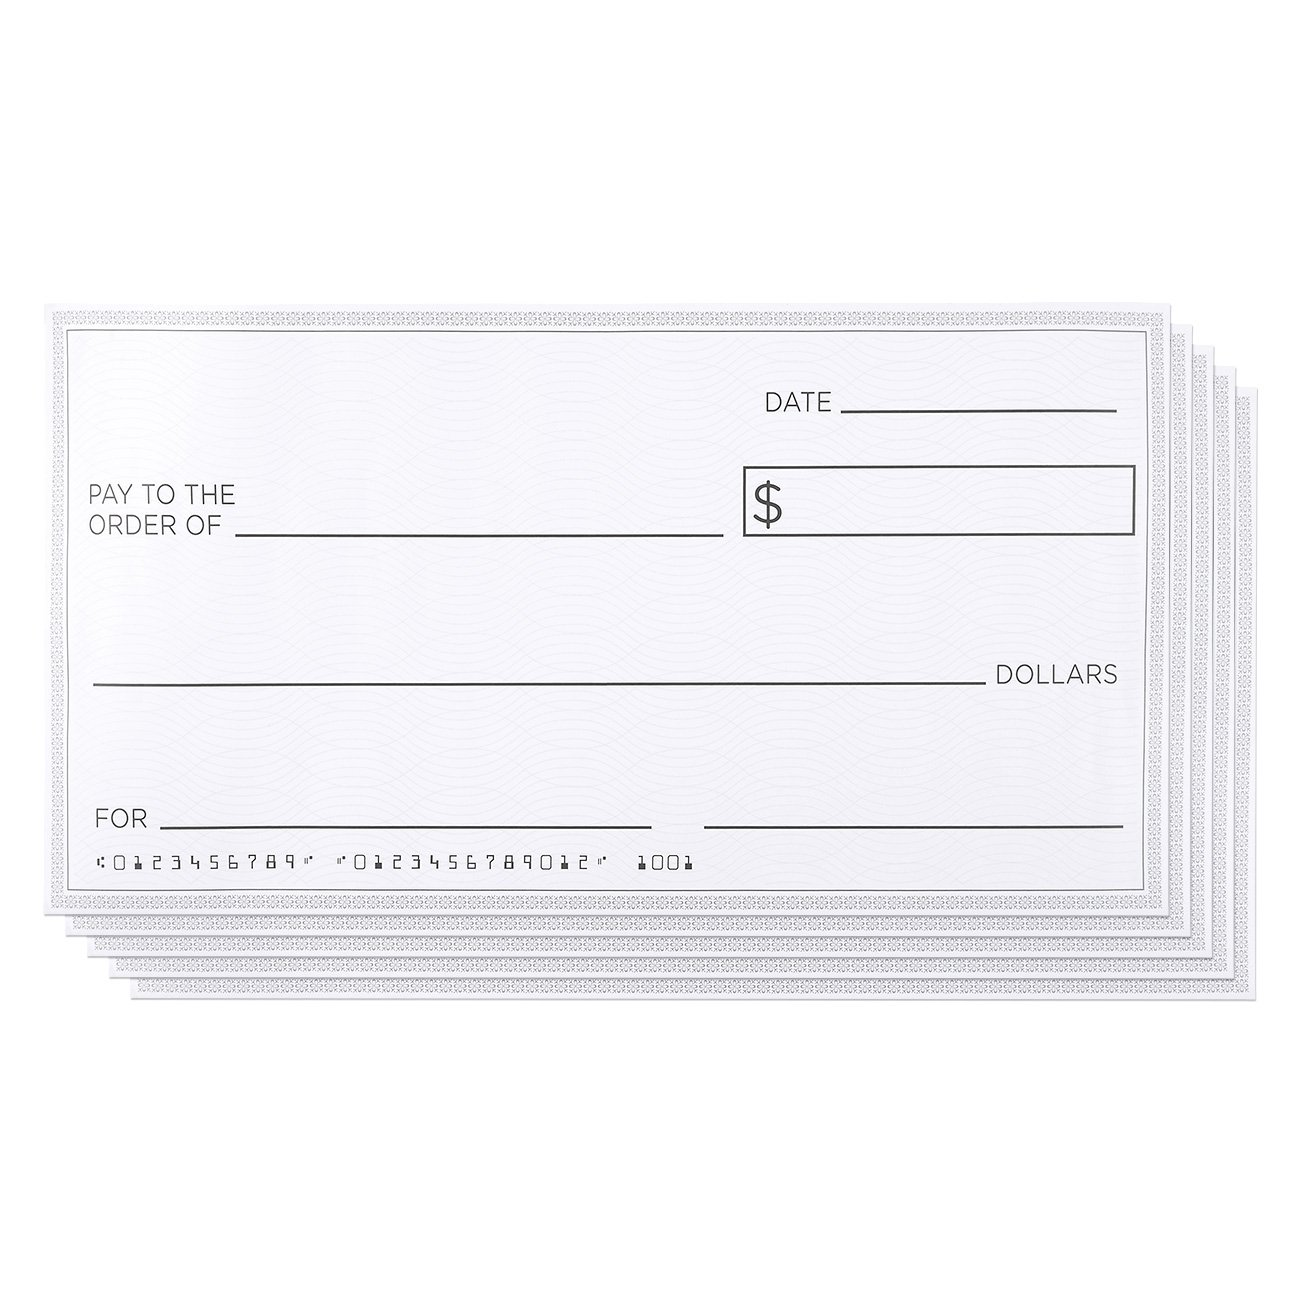 Blue Panda Giant Checks - 5-Count Paper Giant Fake Novelty Checks, Large Presentation Checks for Endowment Award, Donations, and Fundraisers, Each Big Check Measures 30 x 16 Inches by Blue Panda